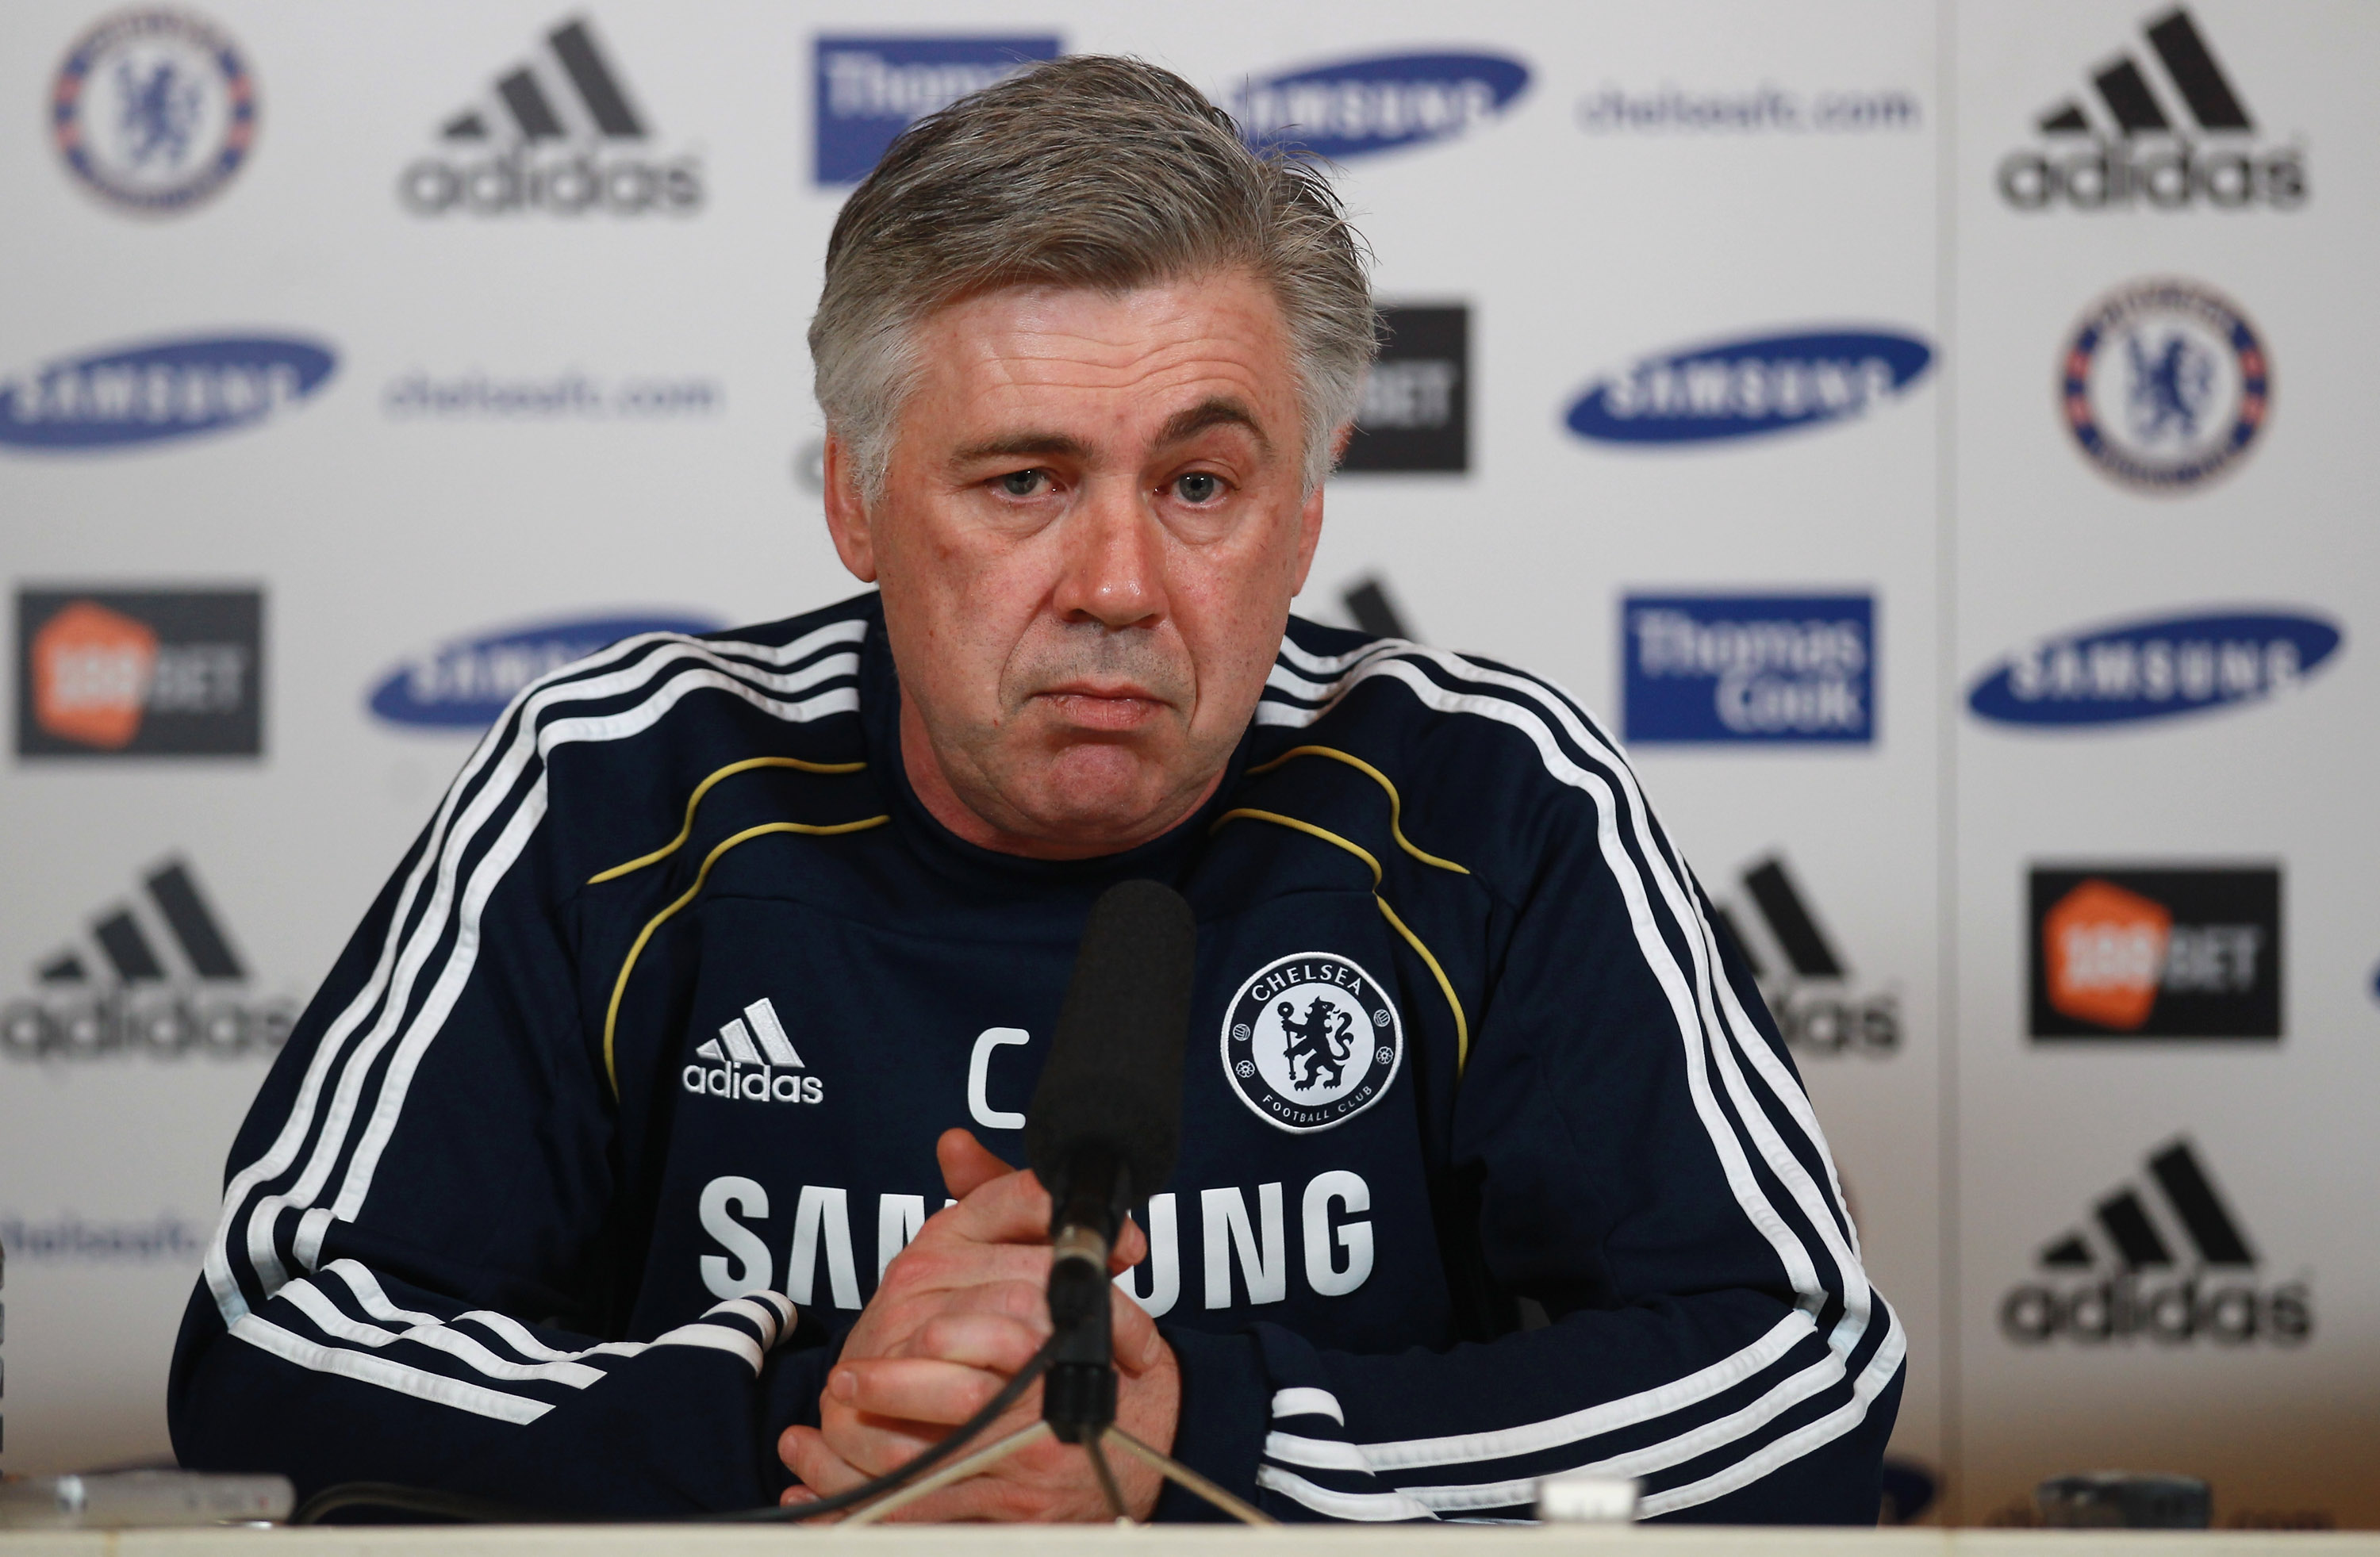 COBHAM, ENGLAND - FEBRUARY 11:  Chelsea manager Carlo Ancelotti address a press conference at the Cobham training ground on February 11, 2011 in Cobham, England.  (Photo by Warren Little/Getty Images)